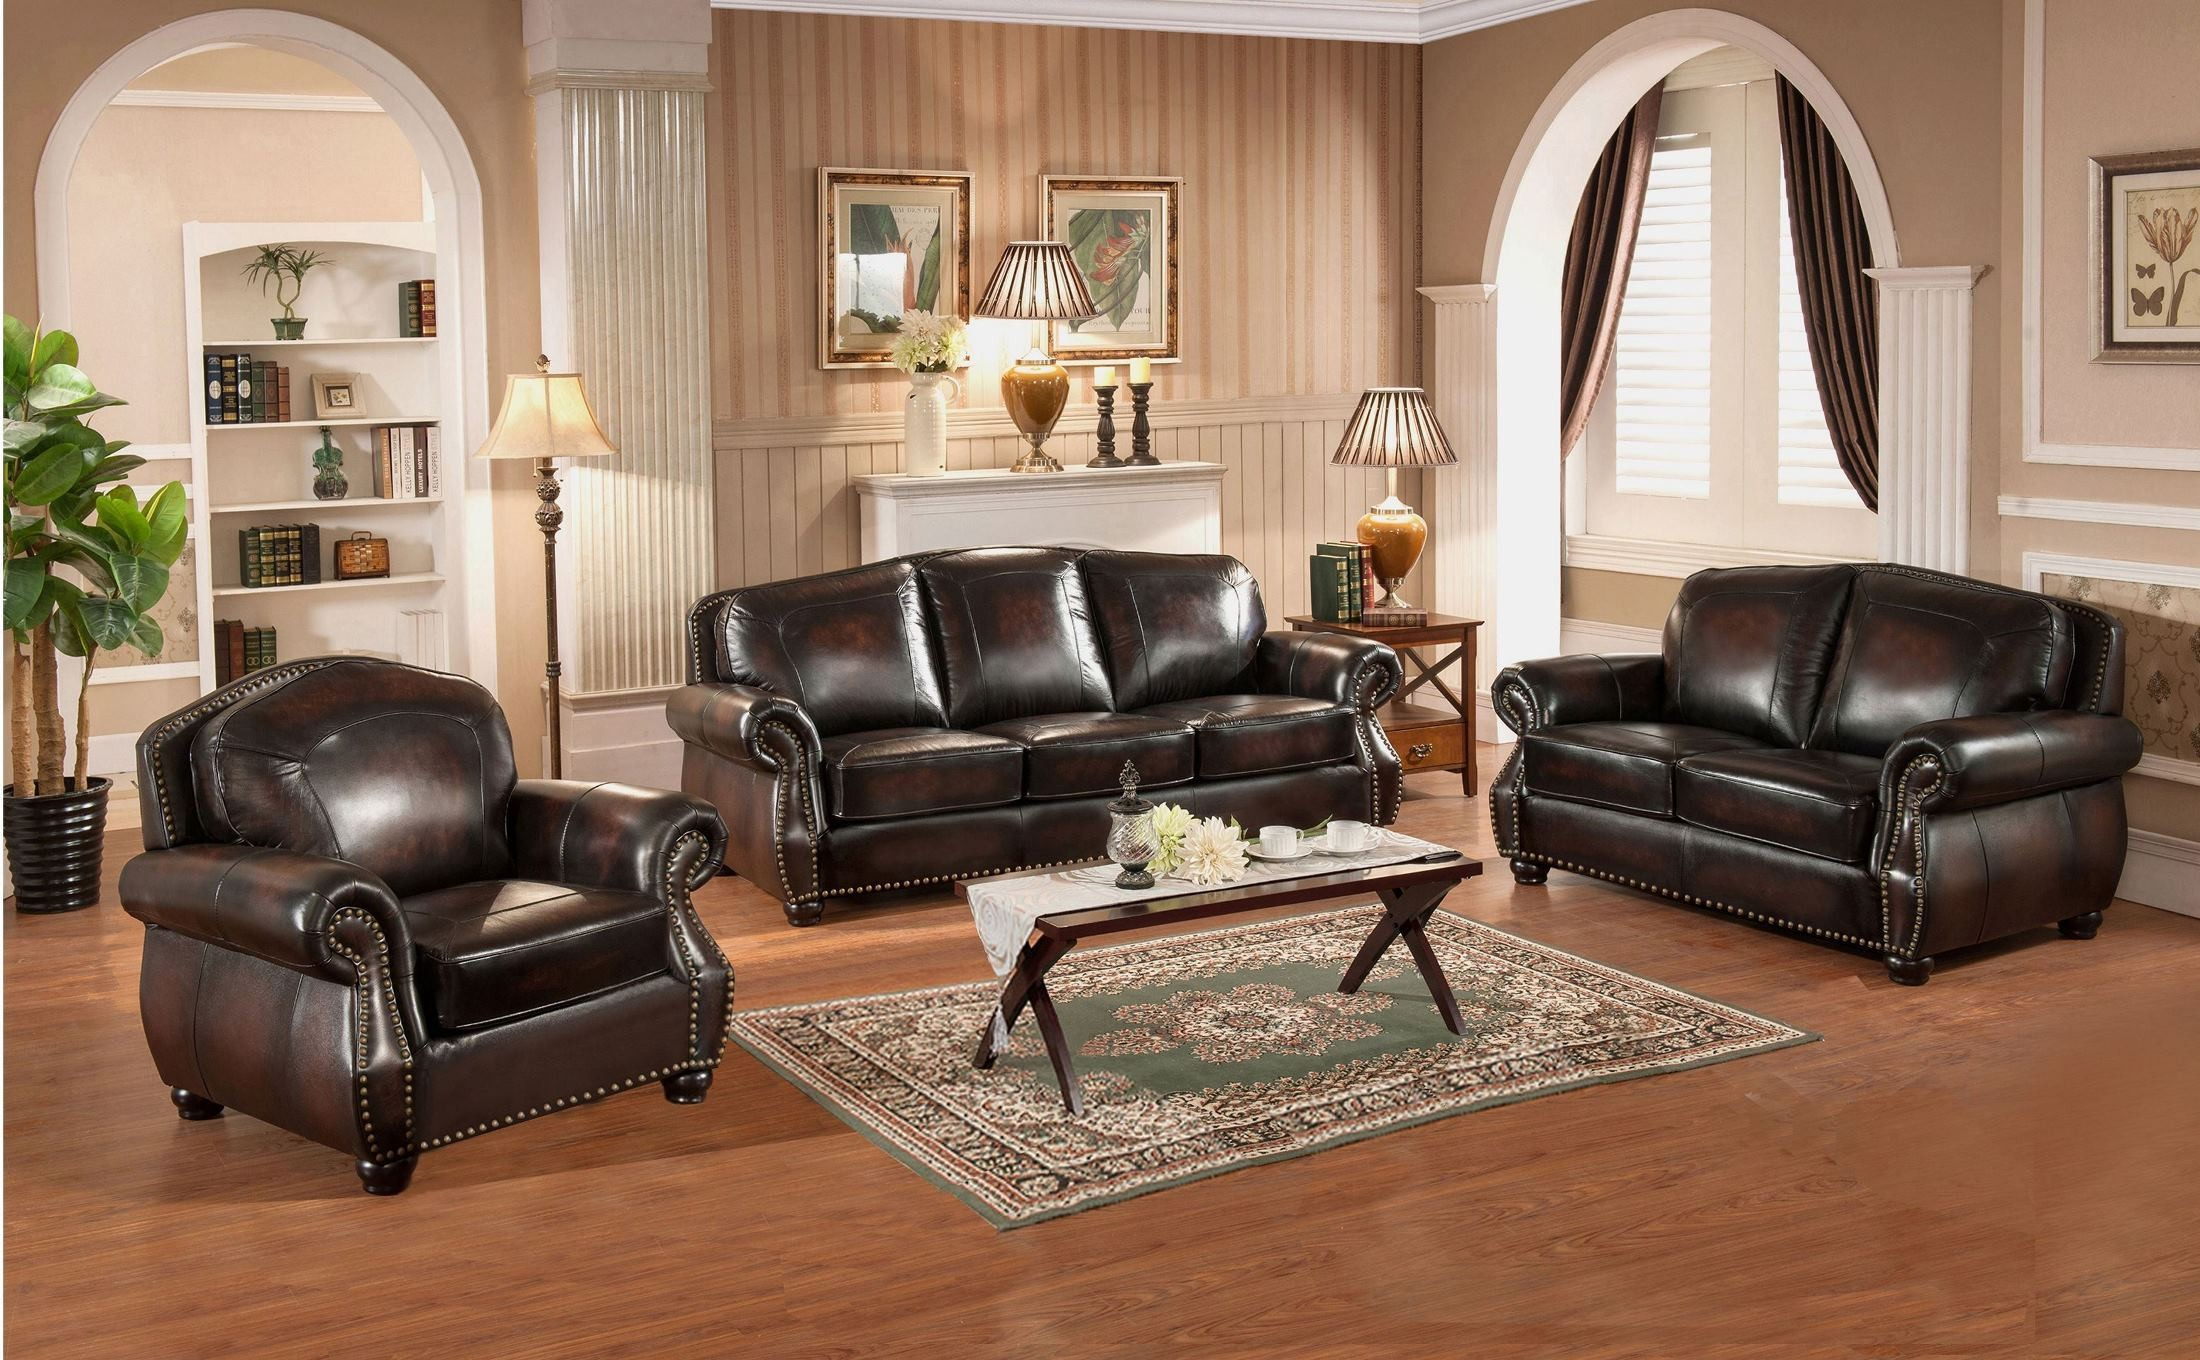 Brown Leather Living Room Set : Hyde Brown Leather Living Room Set from Amax Leather ...